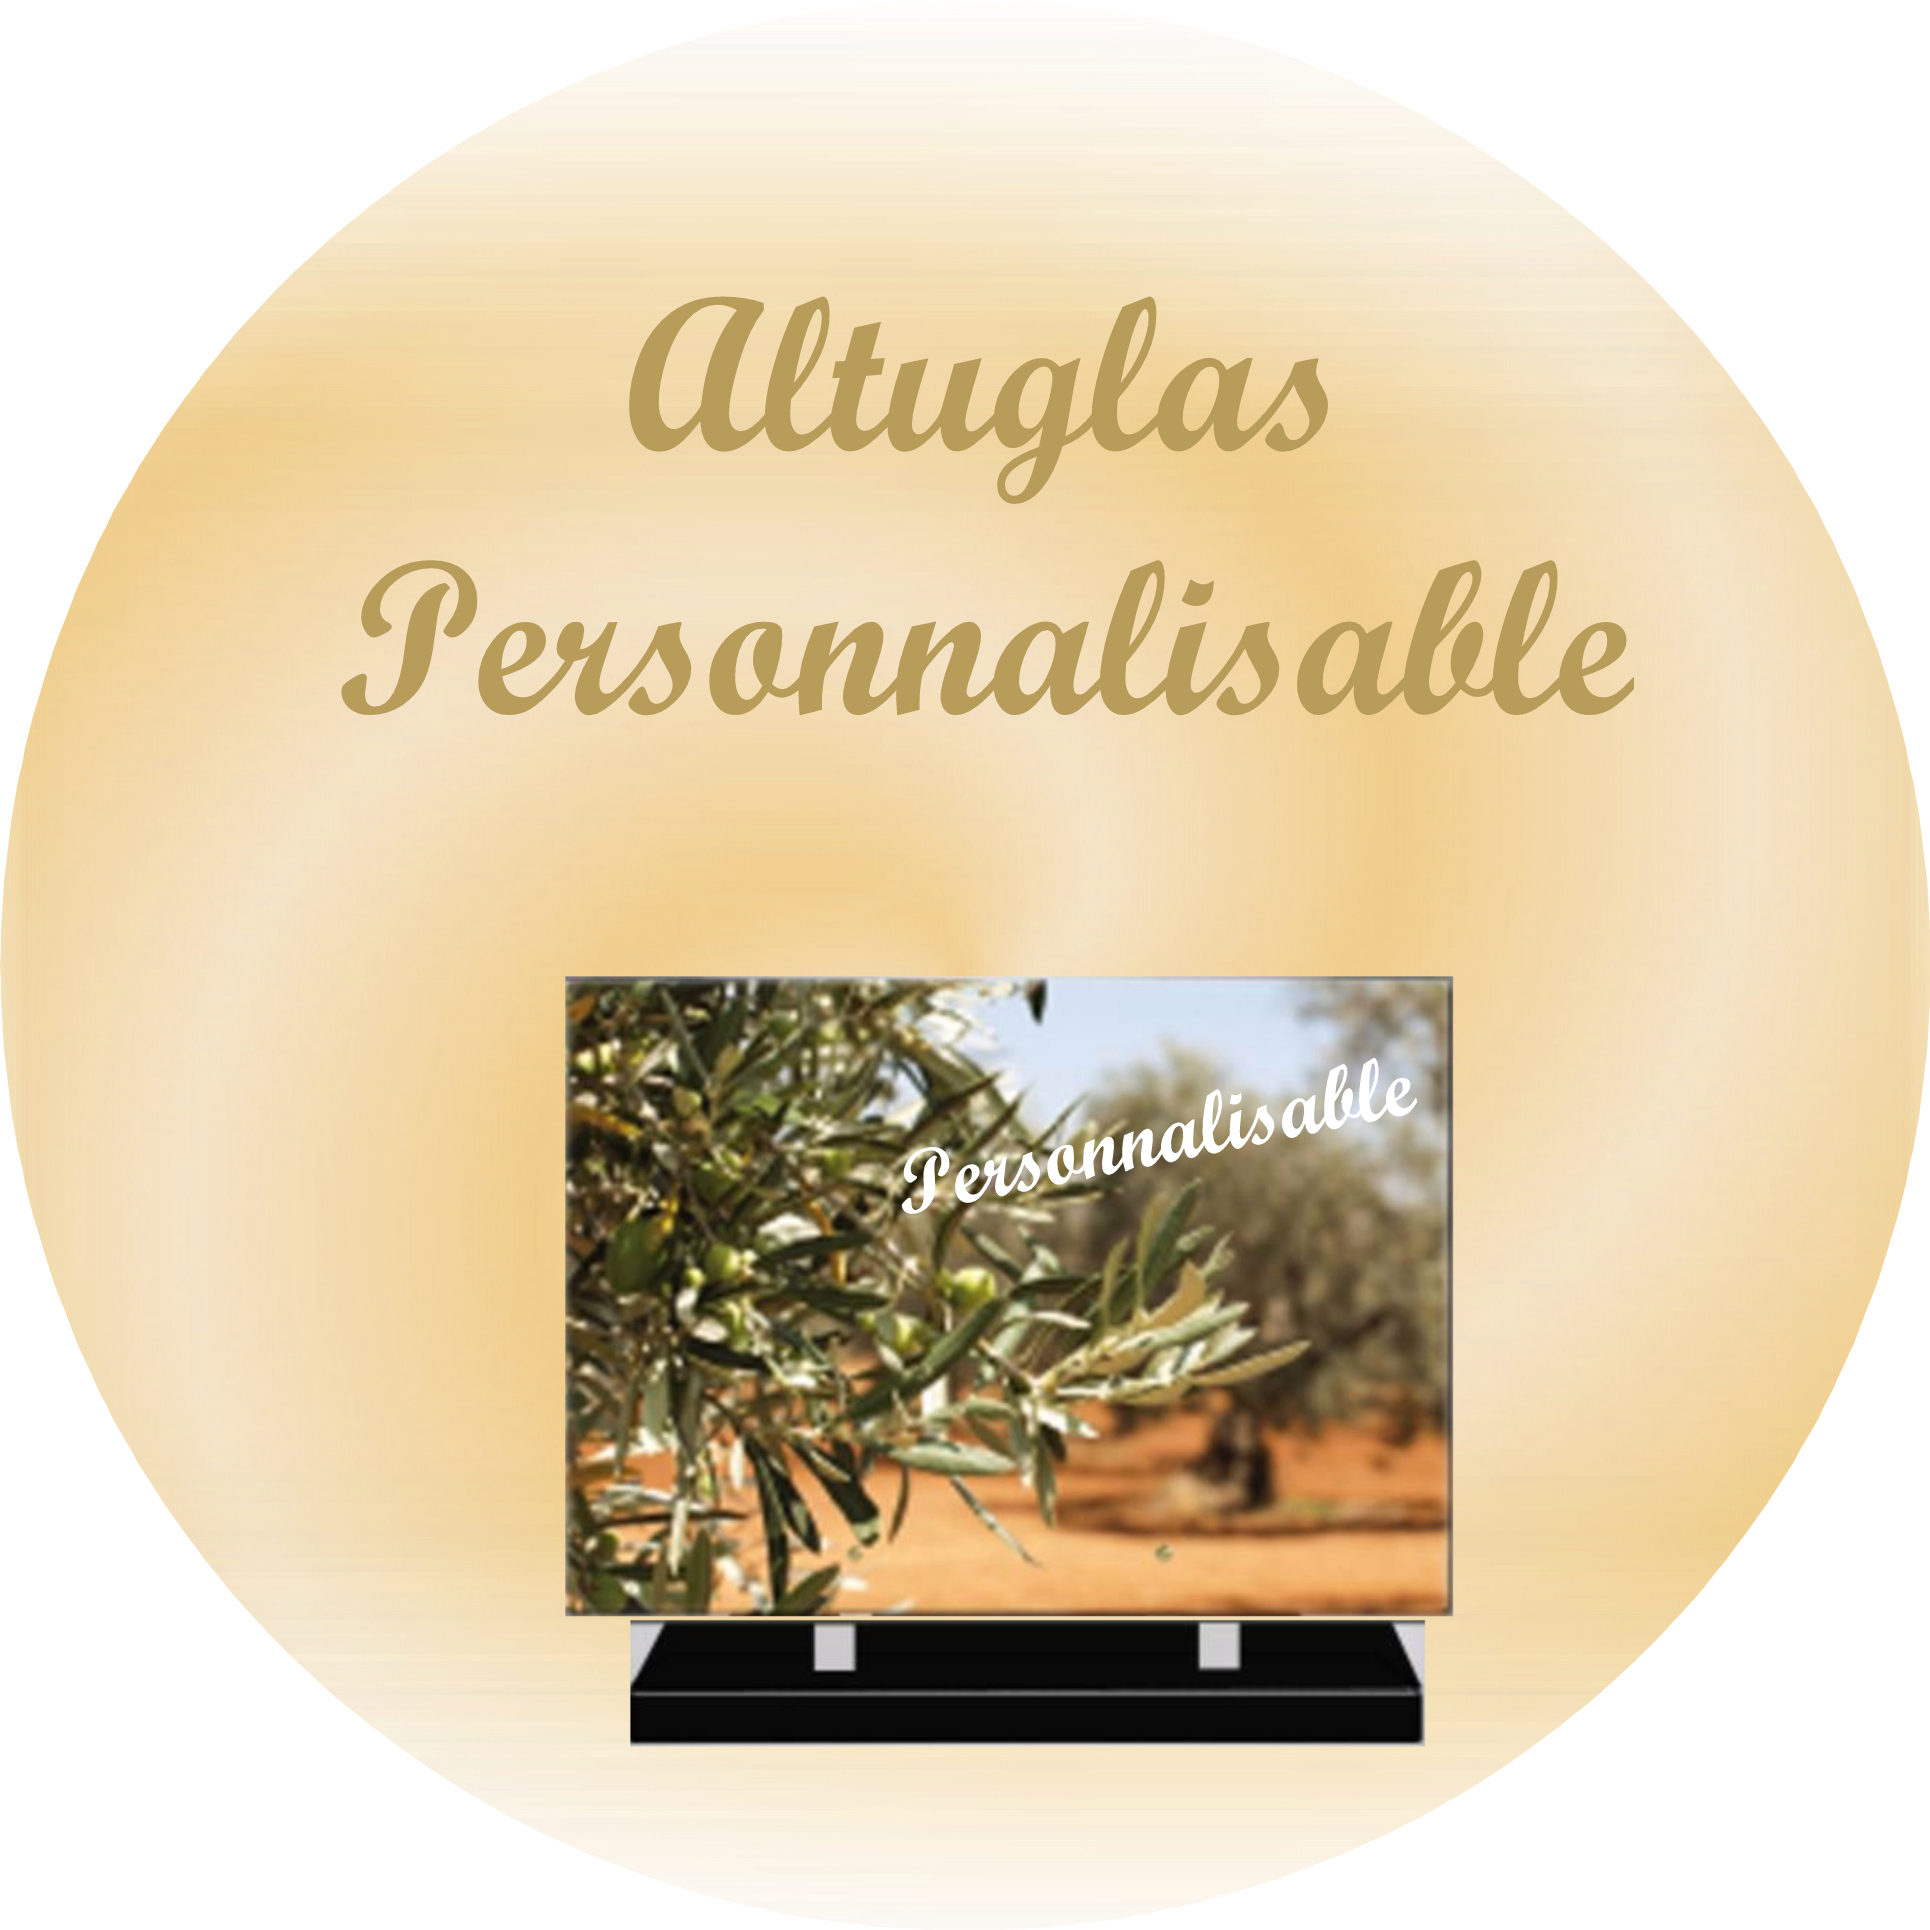 PLAQUES FUNERAIRES MODERNES PERSONNALISABLES RECTANGLE AUTINGUES